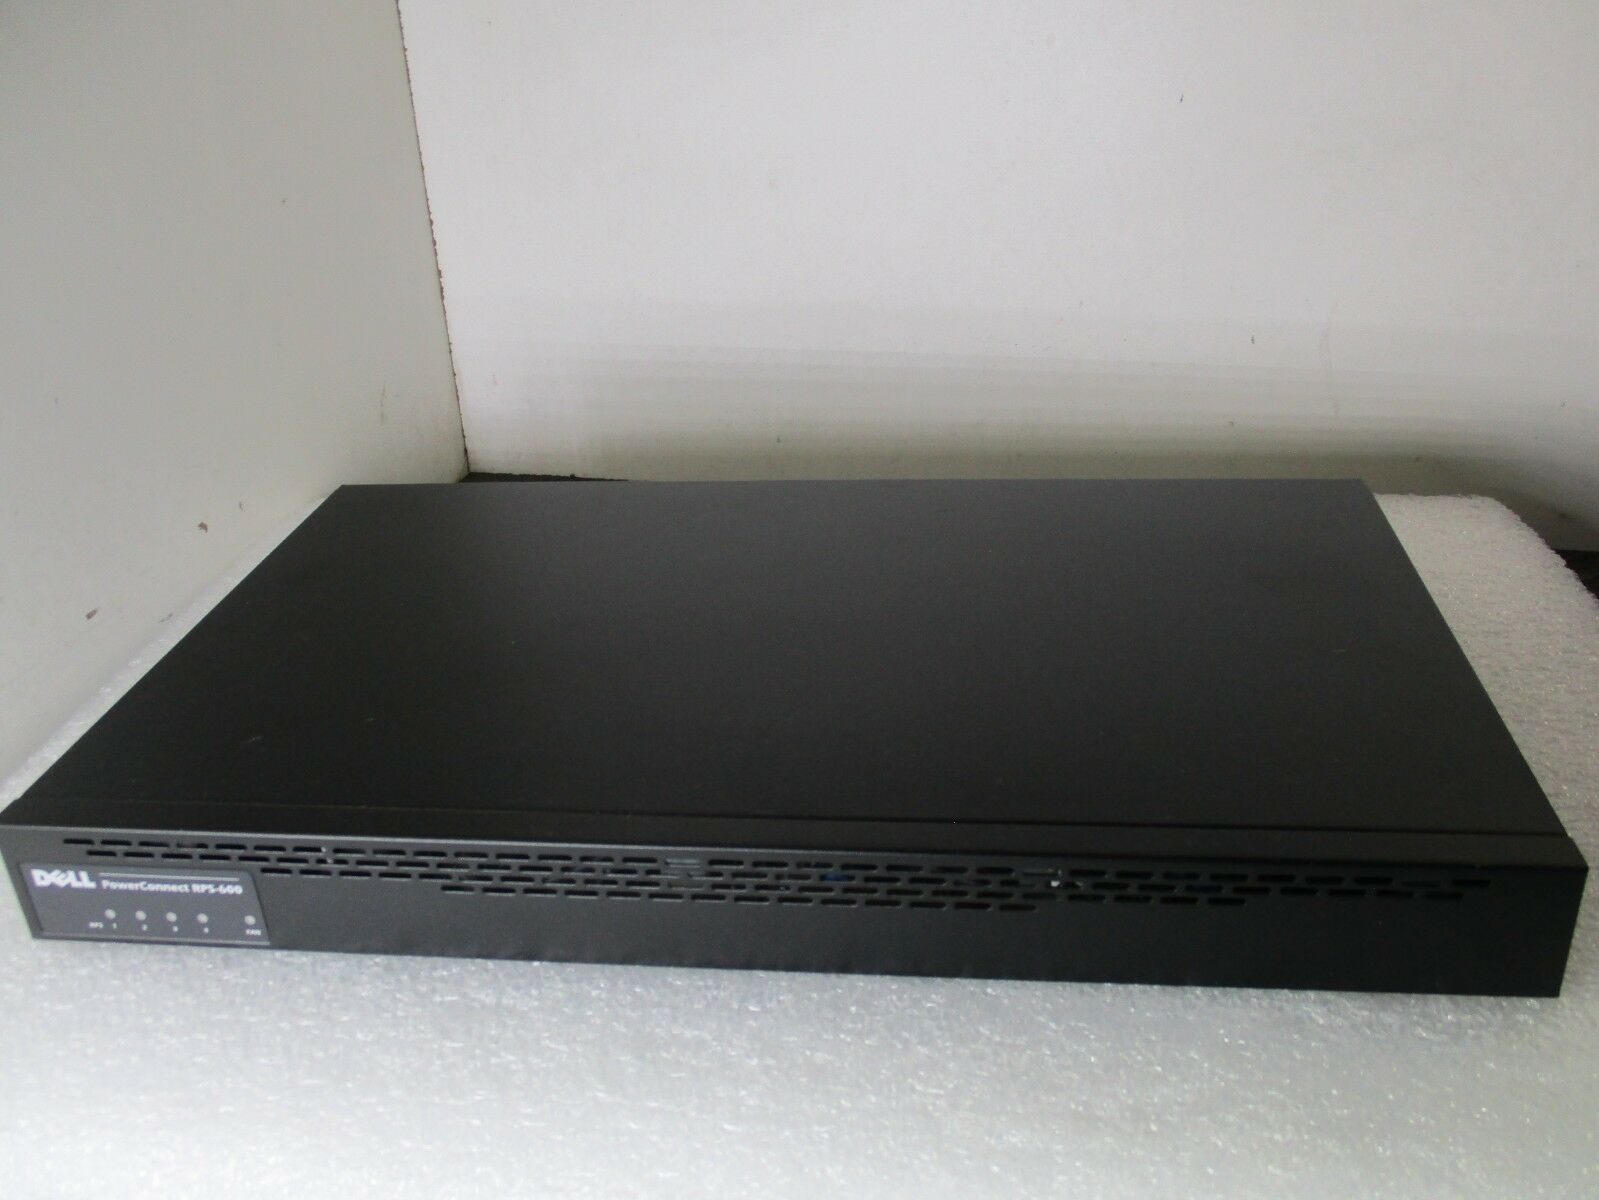 0W700K-DELL POWERCONNECT RPS-600, (P/N: 0W700K)